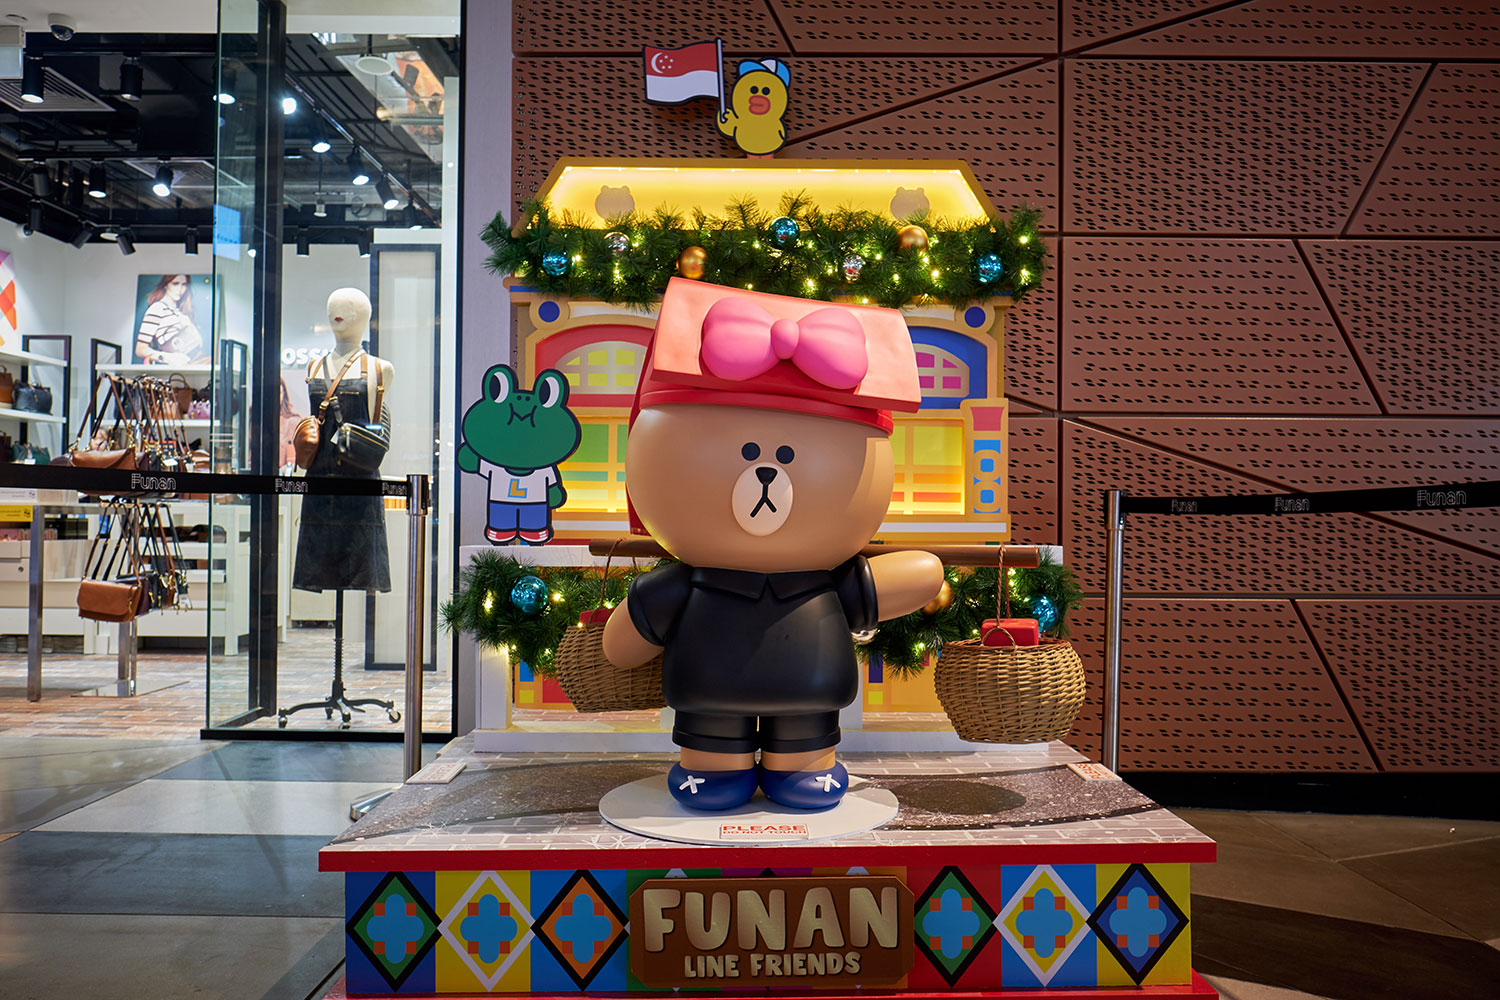 LINE FRIENDS SINGAPORE - FUNAN MALL